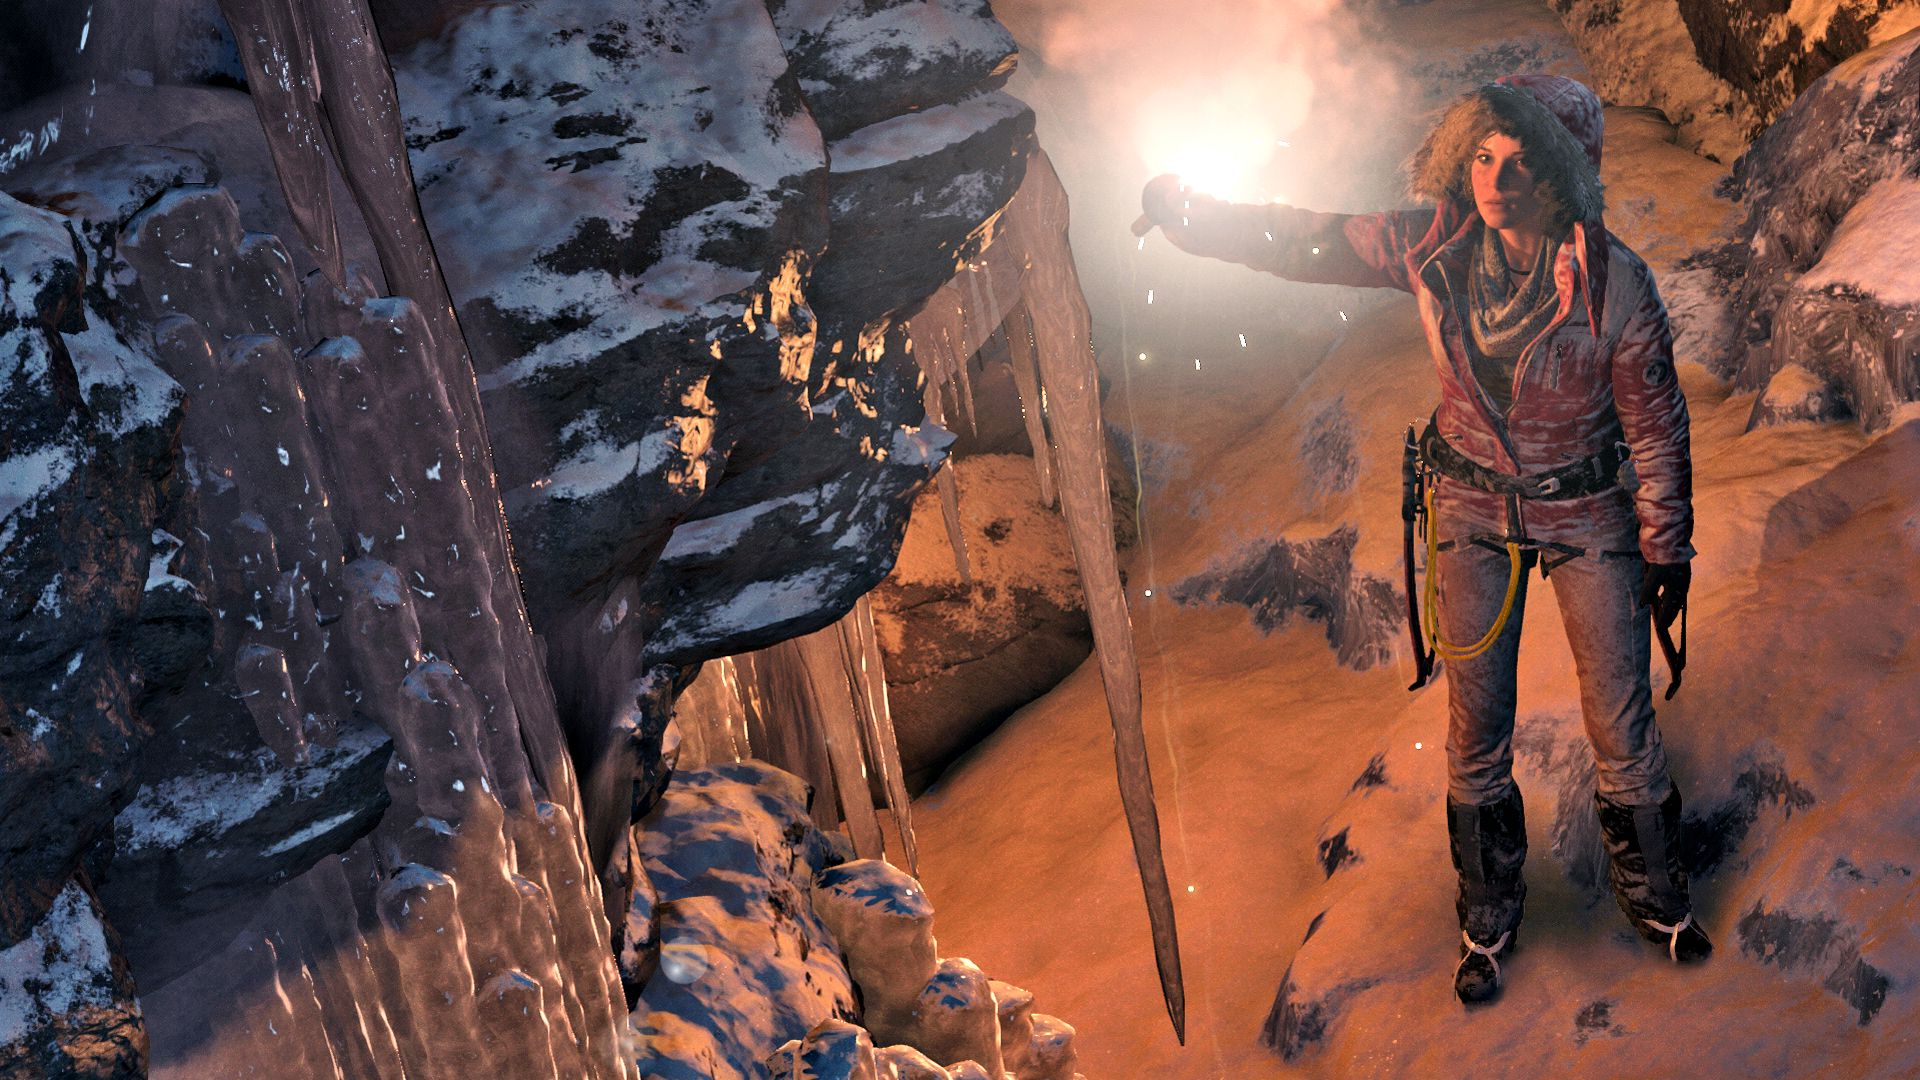 Rise Of The Tomb Raider pic 2 – Tired Old Hack